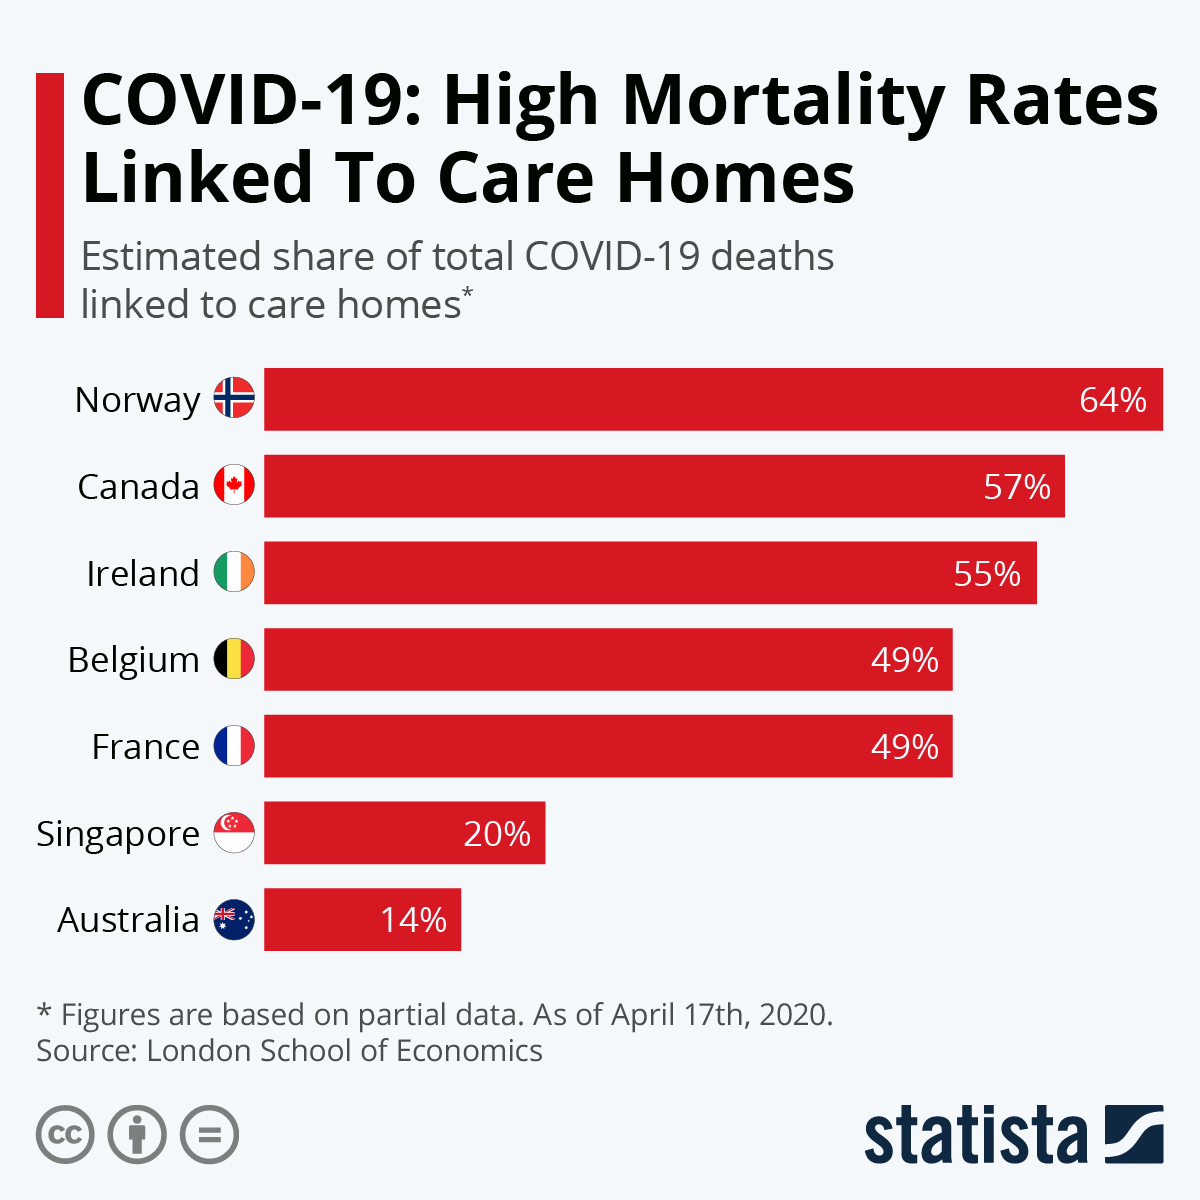 Nursing Homes the Most Vulnerable to COVID-19 Fatalities